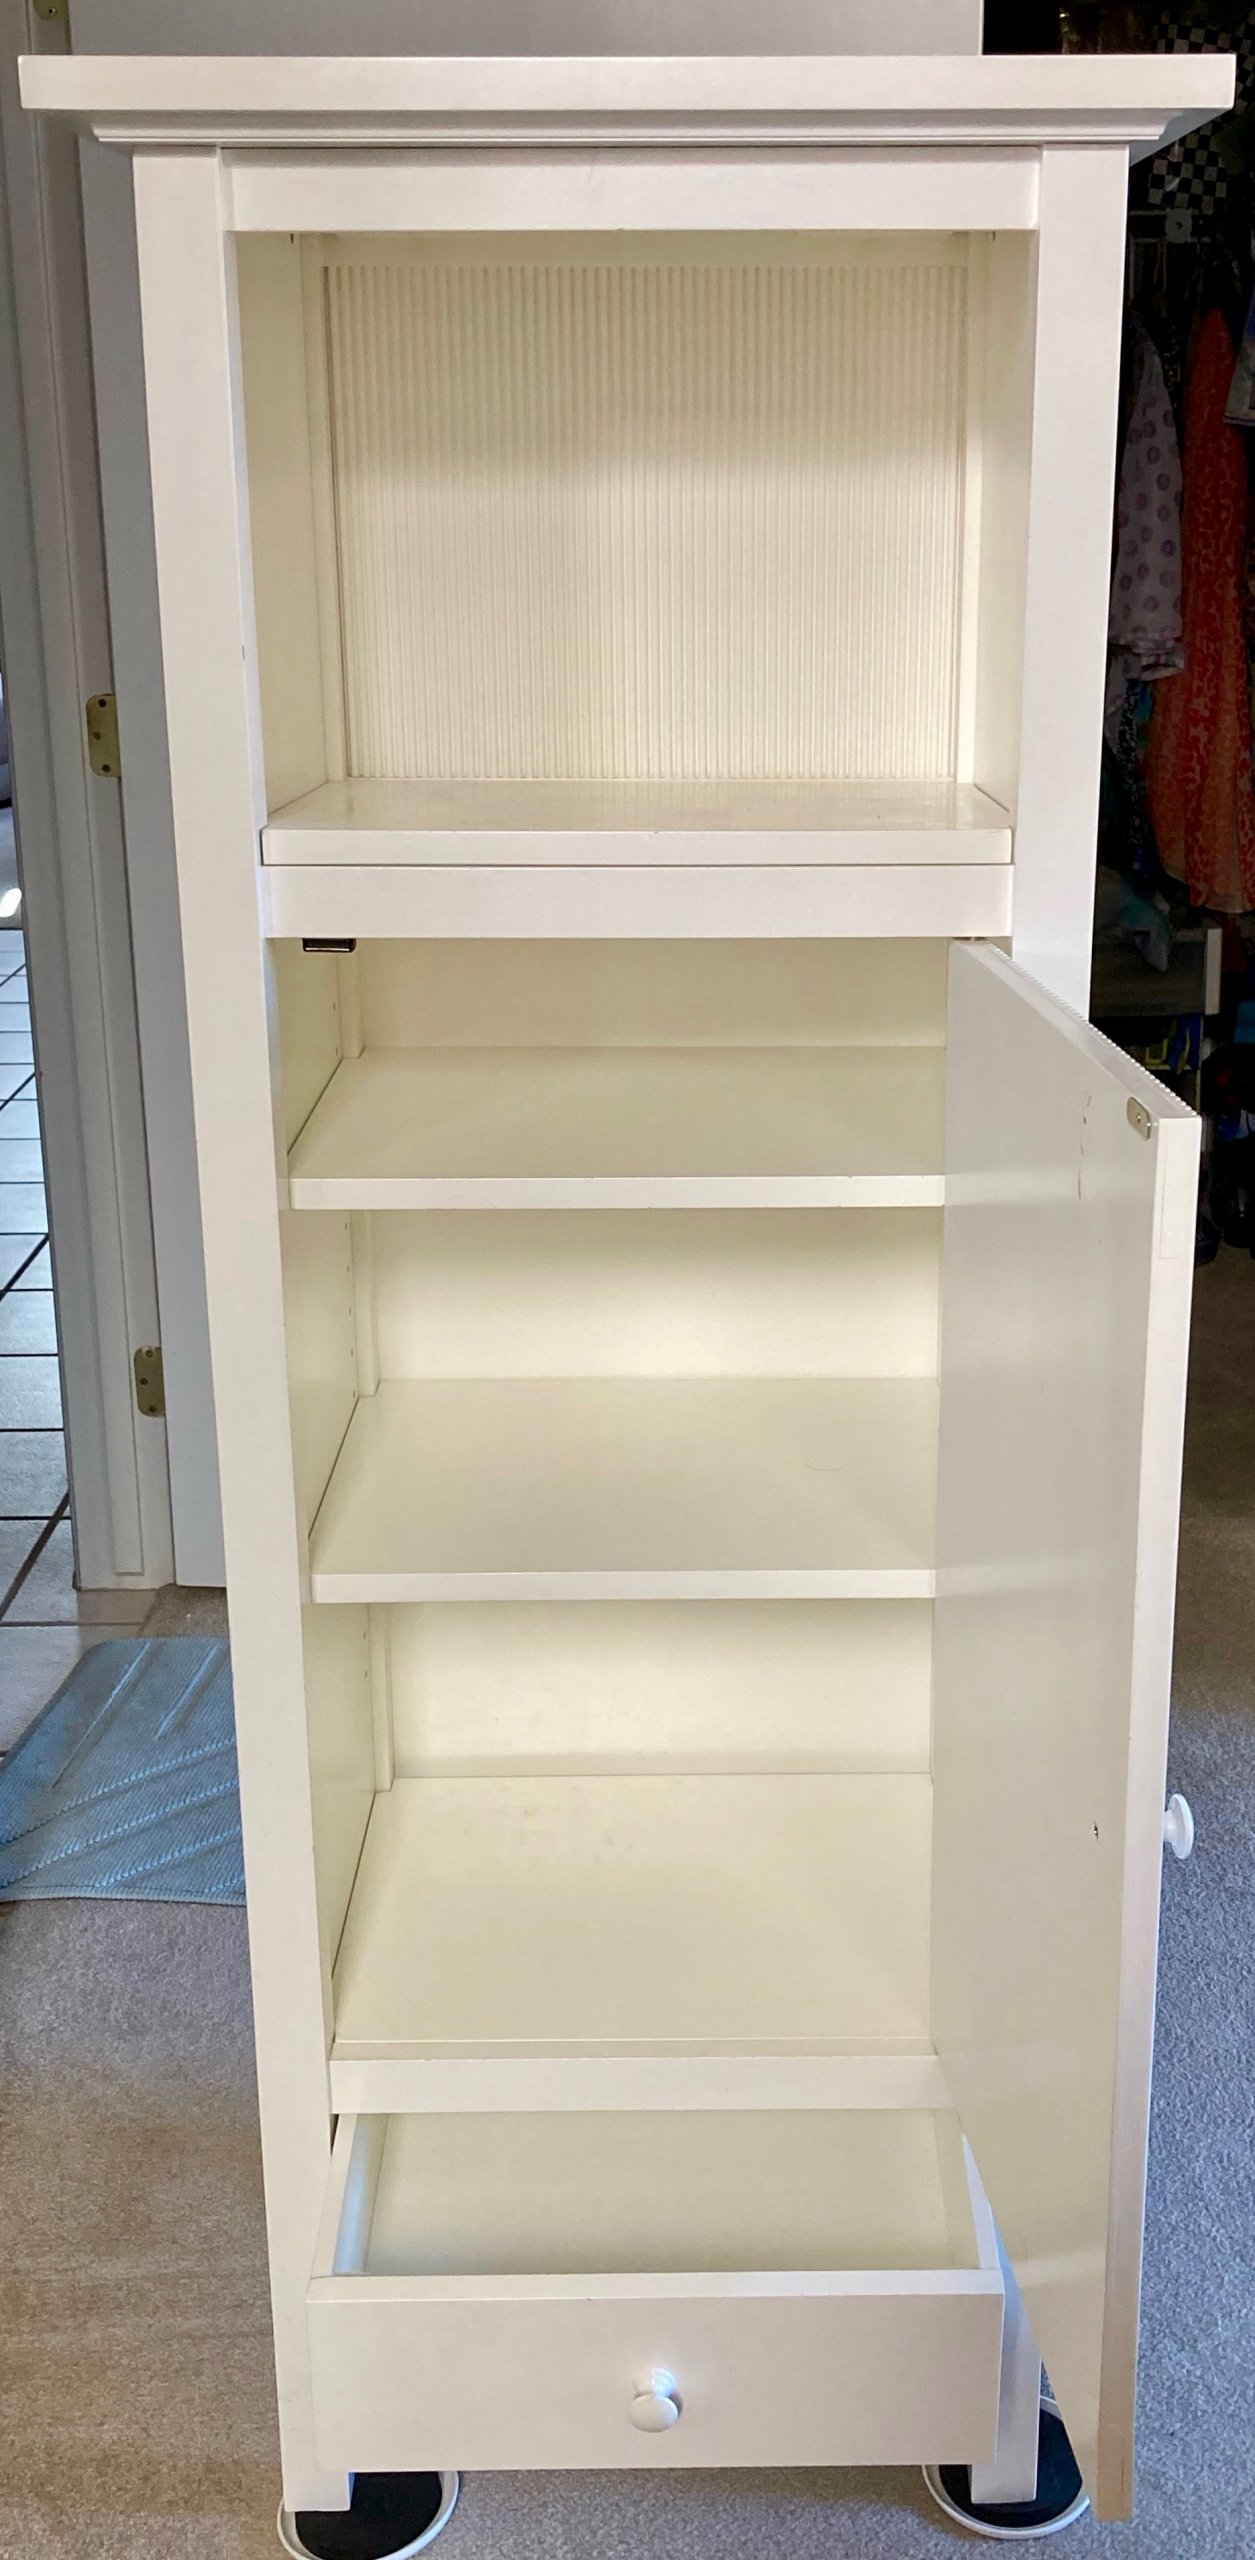 Crate and Barrel white vertical cabinet